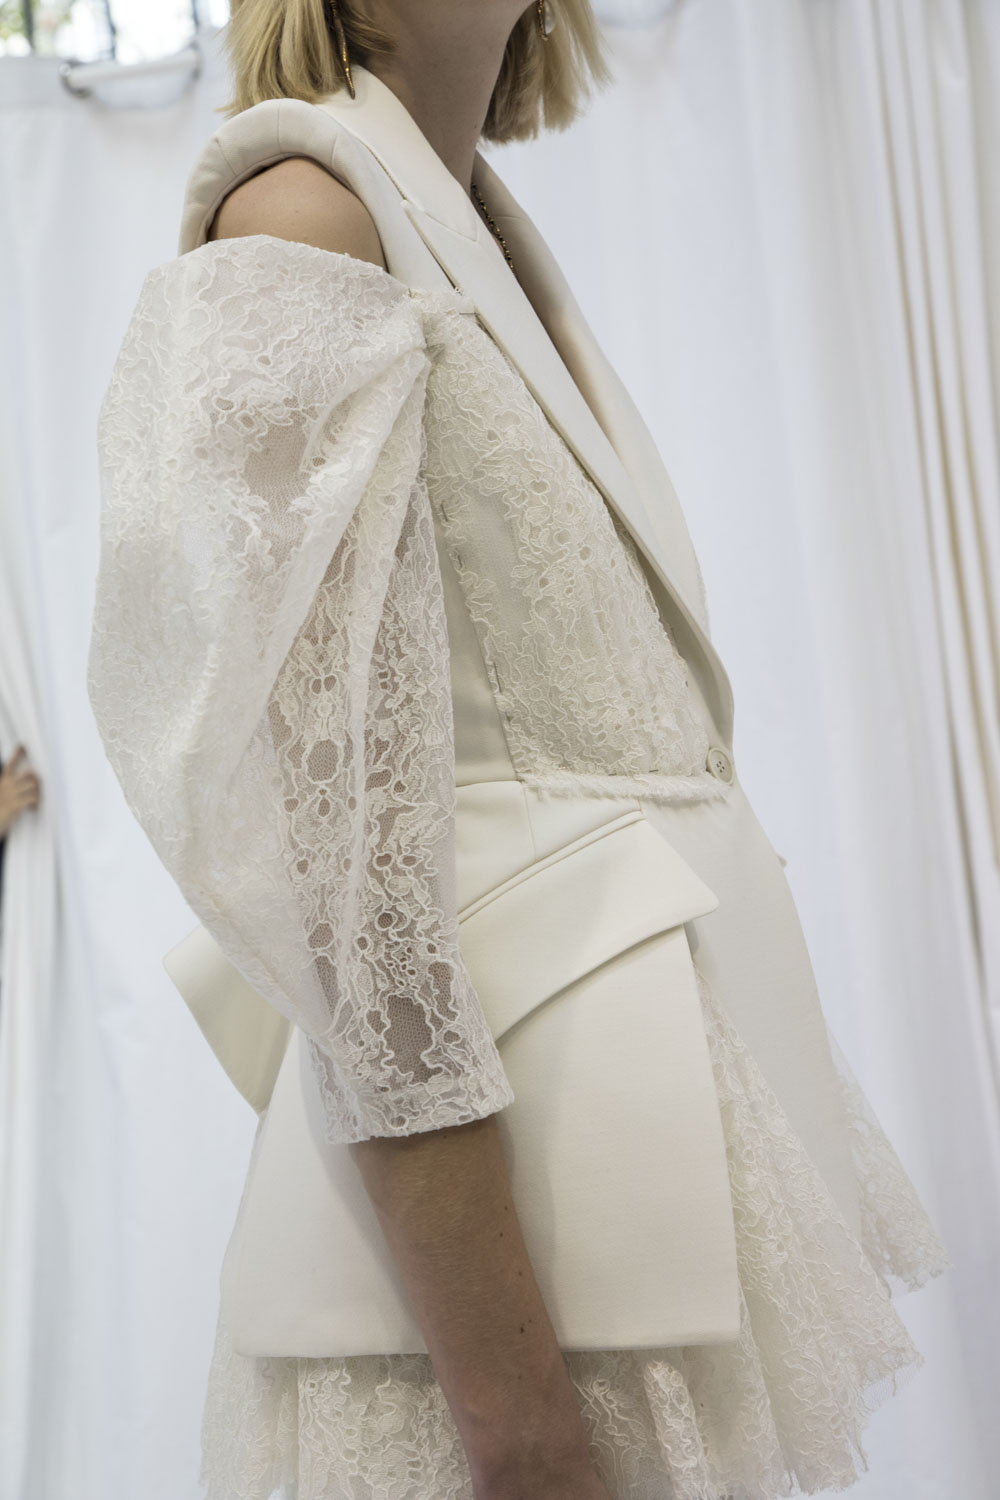 Lace Innovation Fashion Trend by Alexander McQueen